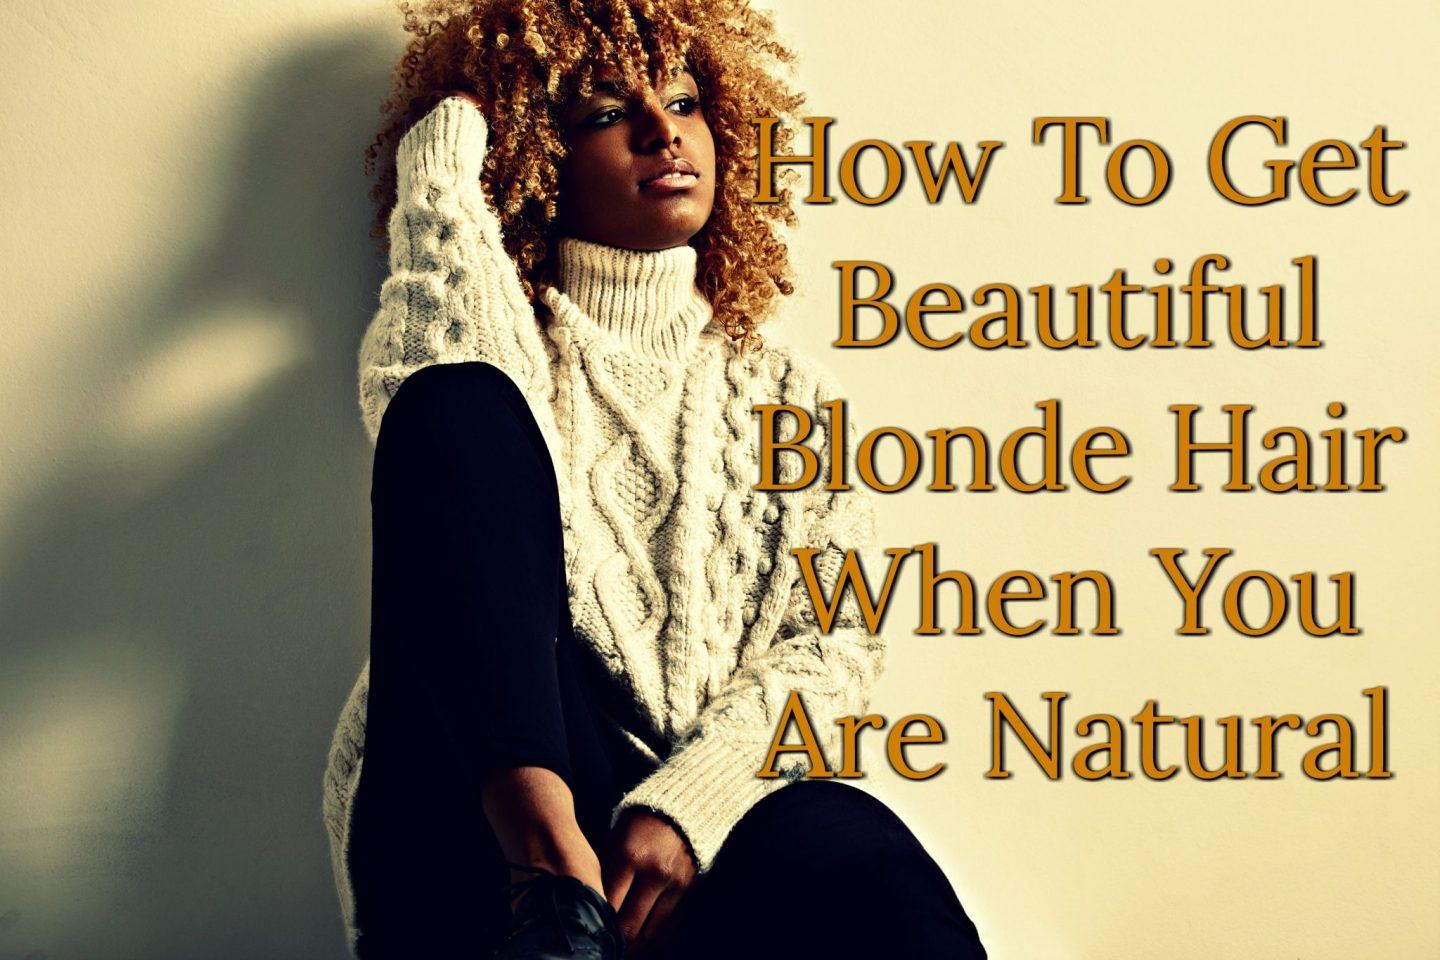 How to get beautiful blonde hair when you are natural and don't want to damage your natural hair. Follow these steps and you will be rocking #BlackGirlMagic